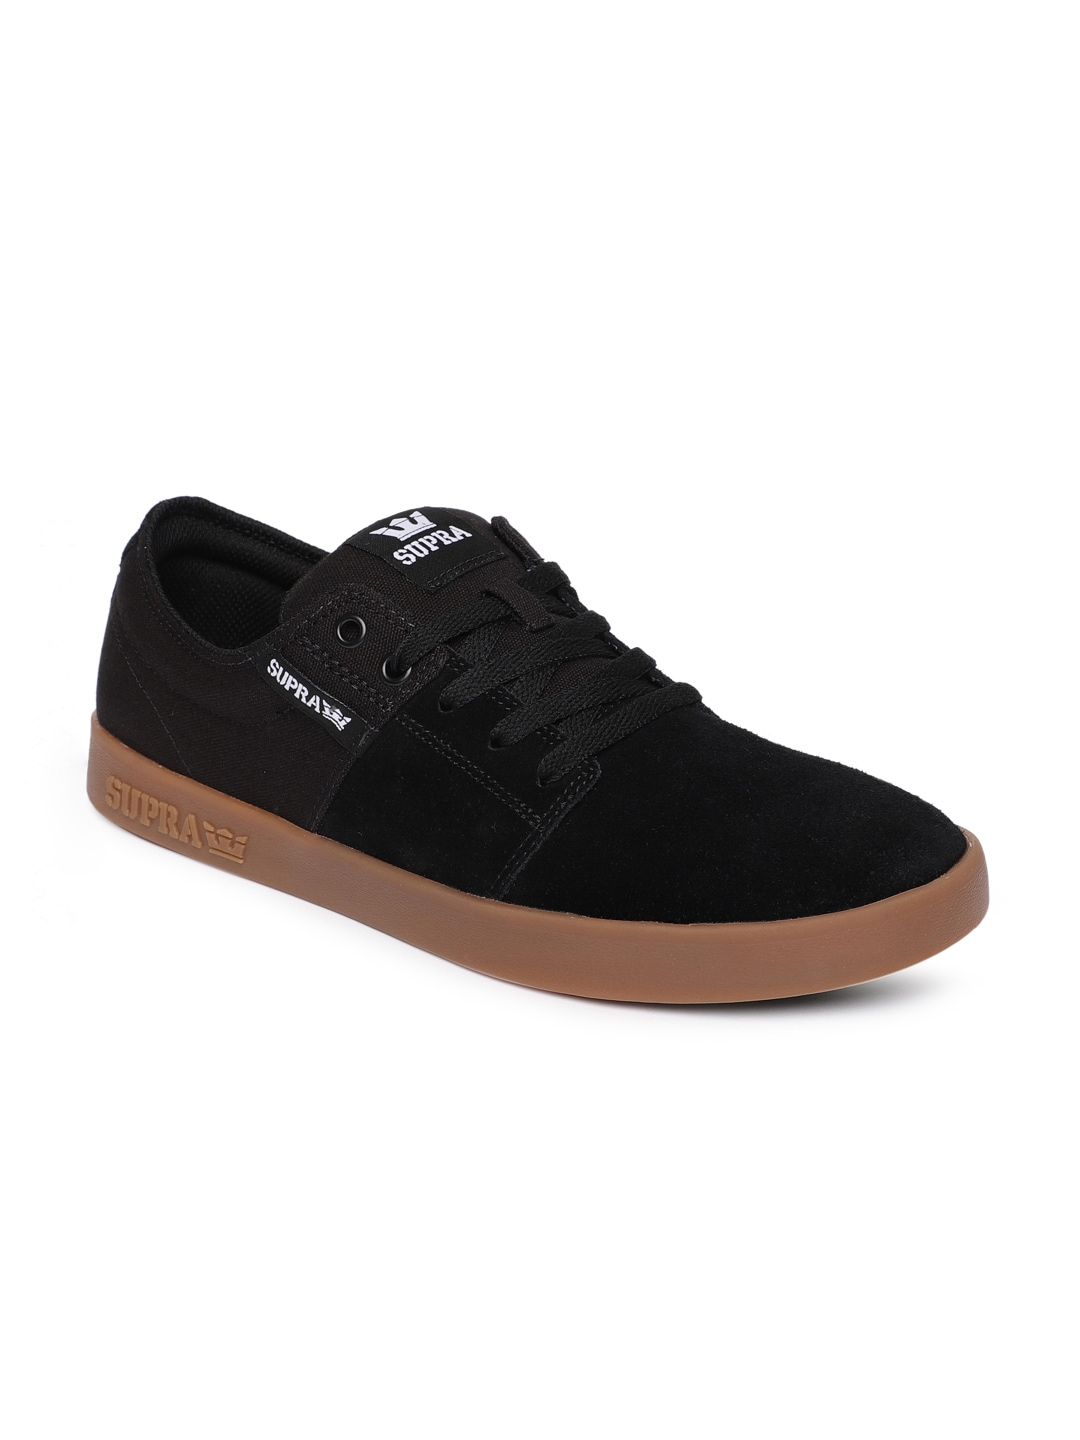 Supra Shoes - Buy Supra Shoes   Sneakers Online in India  37b9f142b